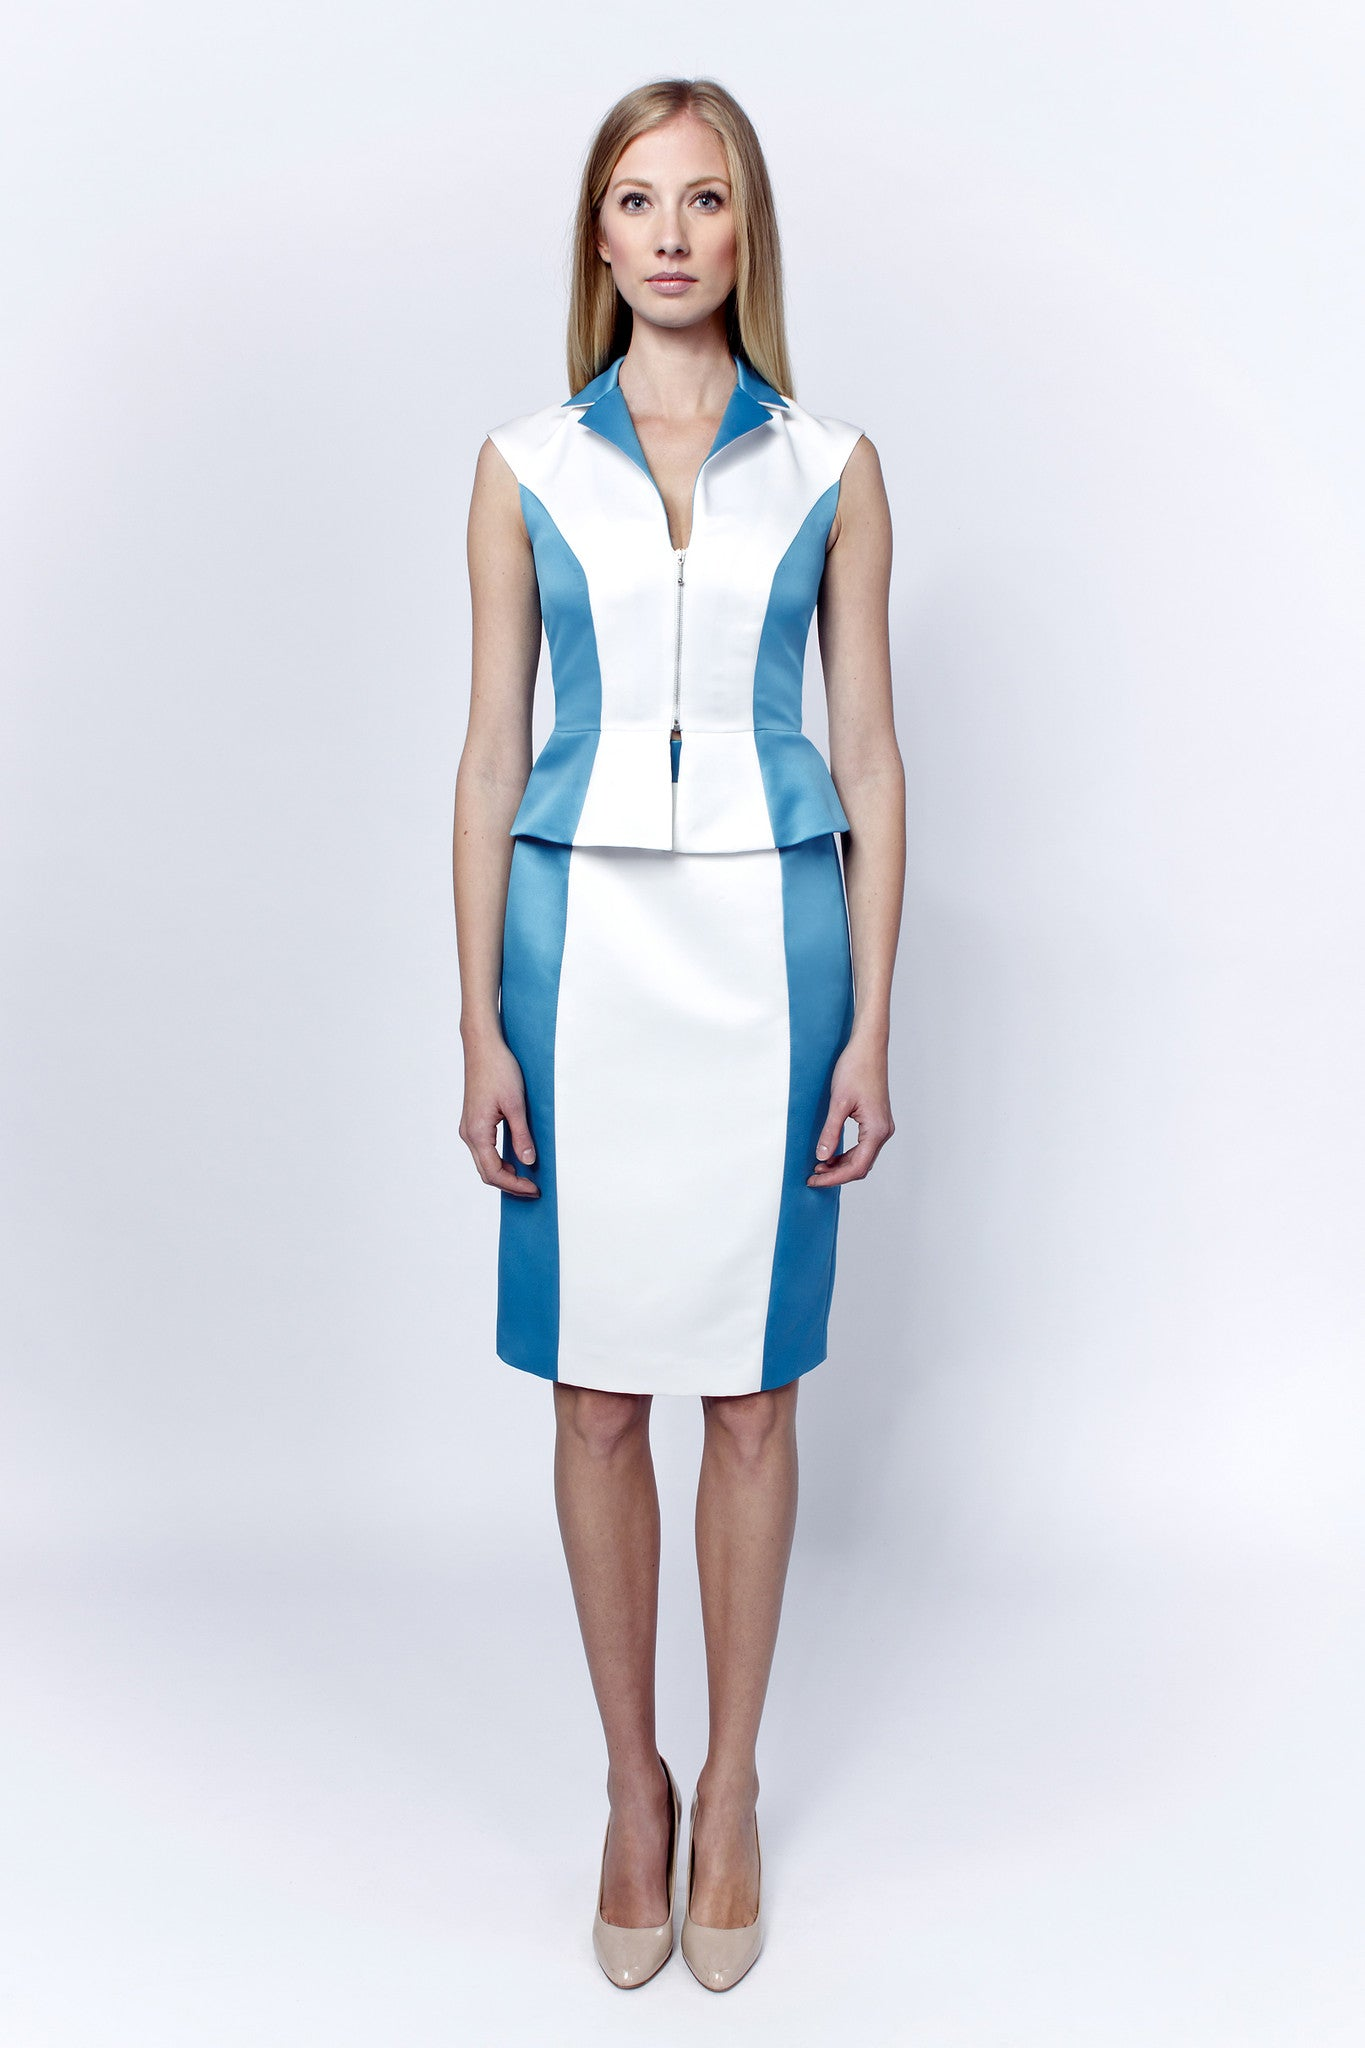 Linea-L white-turquoise suit dress